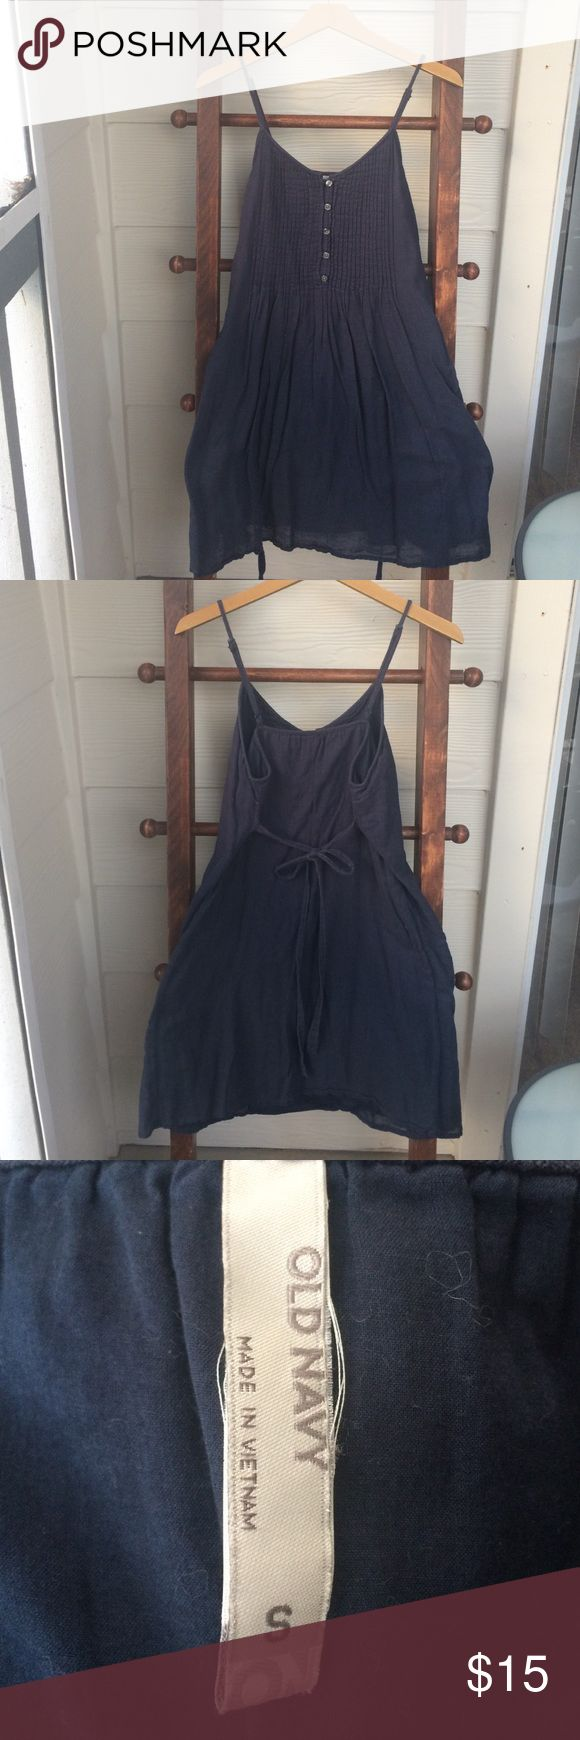 Old Navy Navy Summer Dress (S) Old Navy Small Navy Linen Summer Dress with Front Pleating and Button Detail Old Navy Dresses Midi